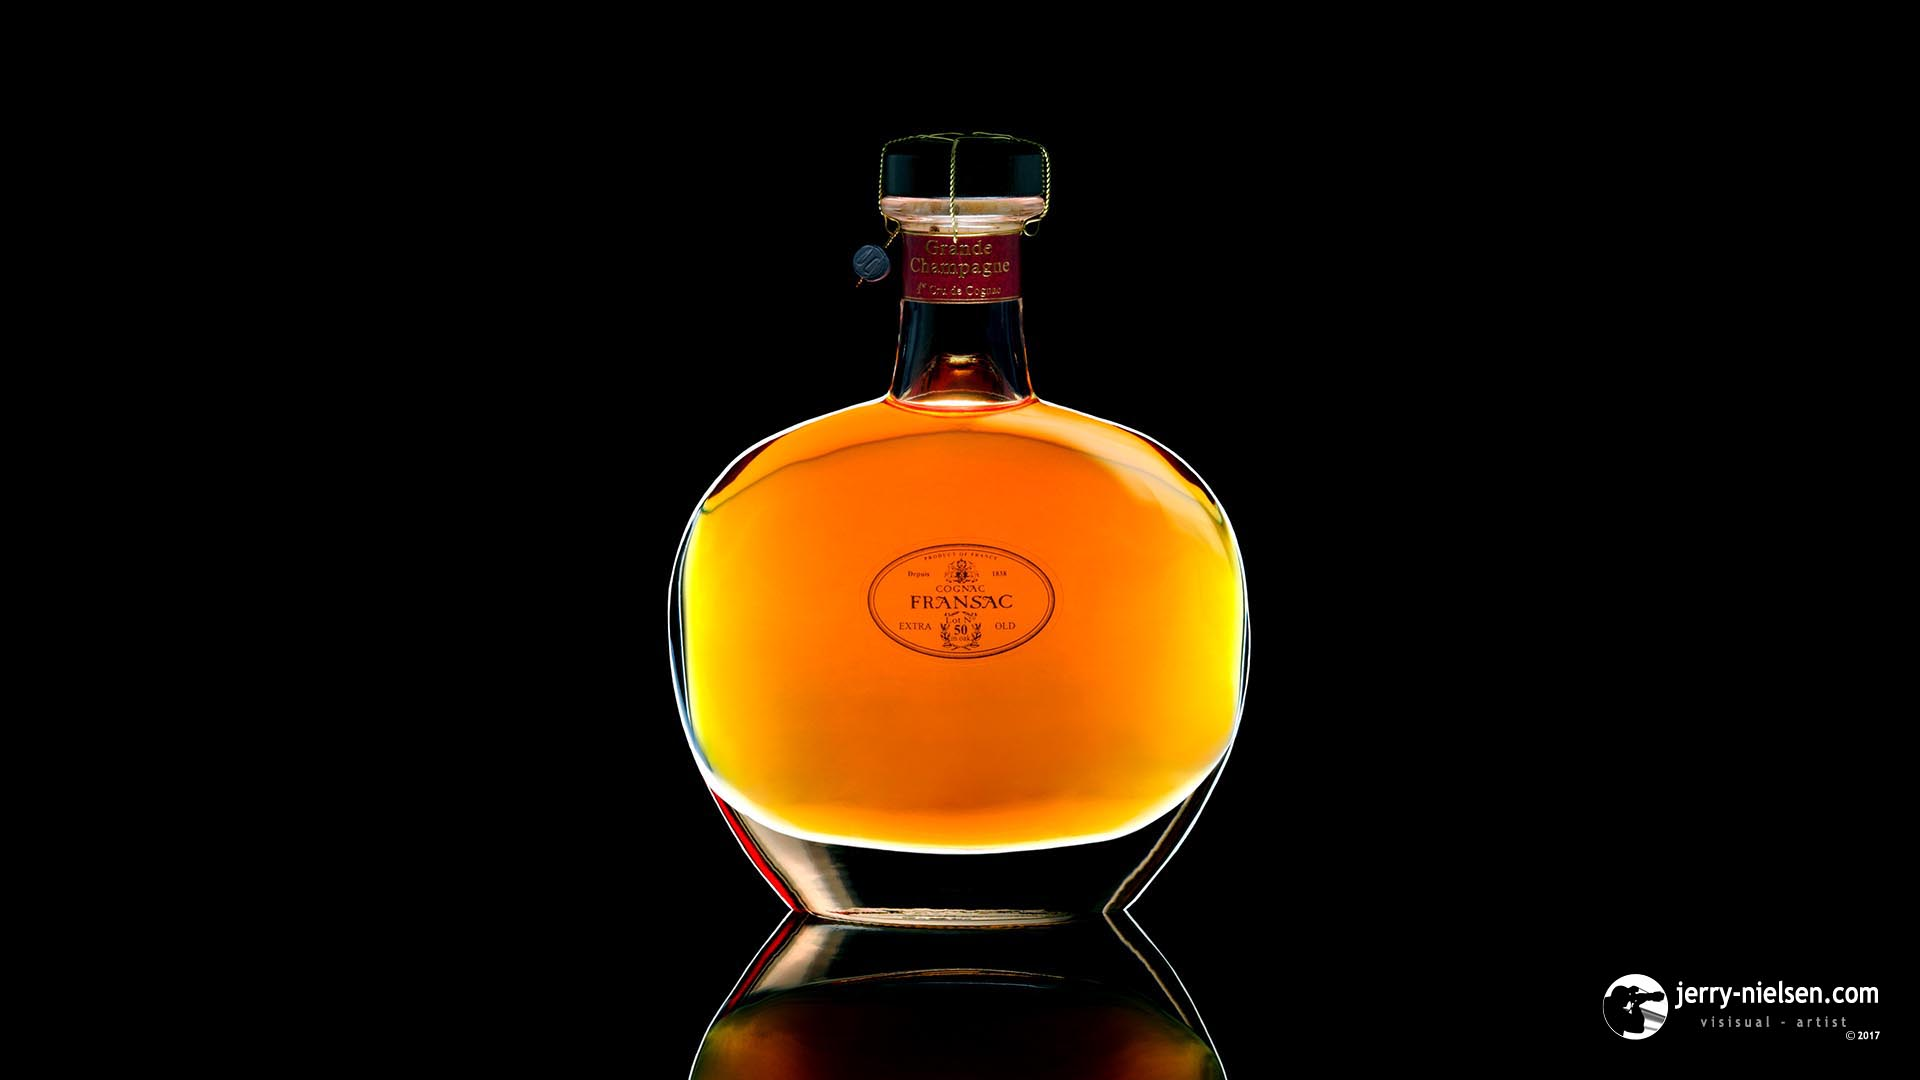 Fransac Cognac Bottle